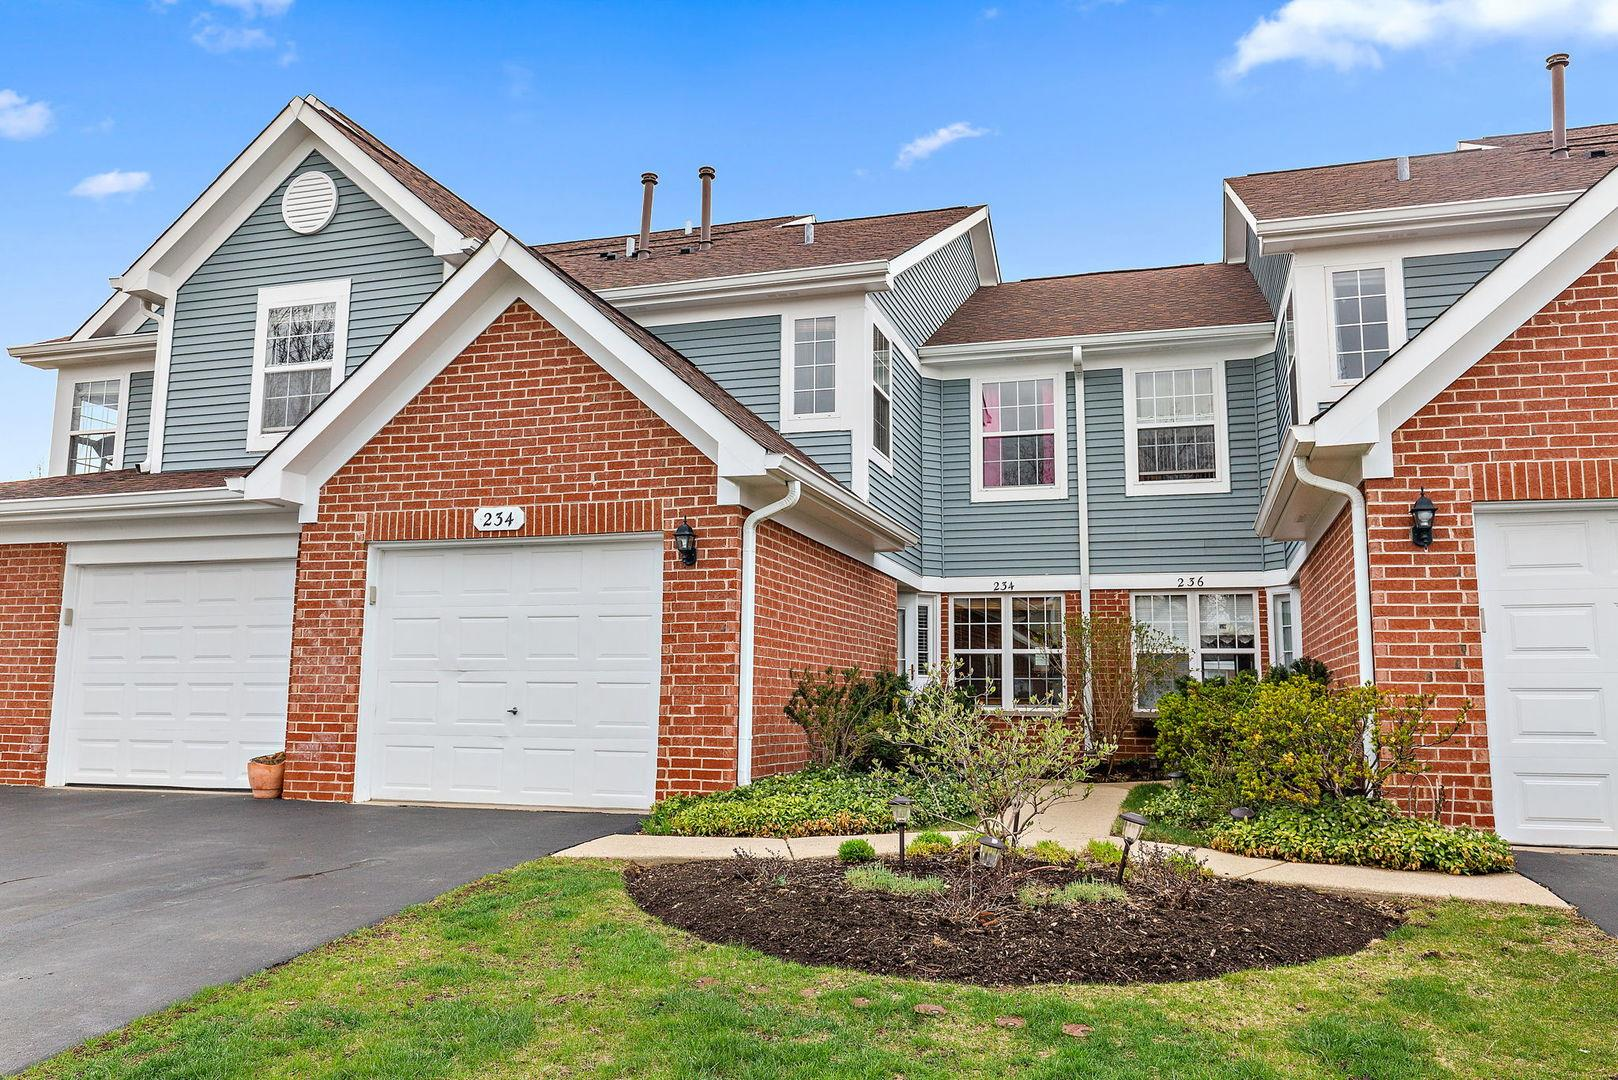 234 MANSFIELD Way #234, Roselle, IL 60172 - #: 11050572